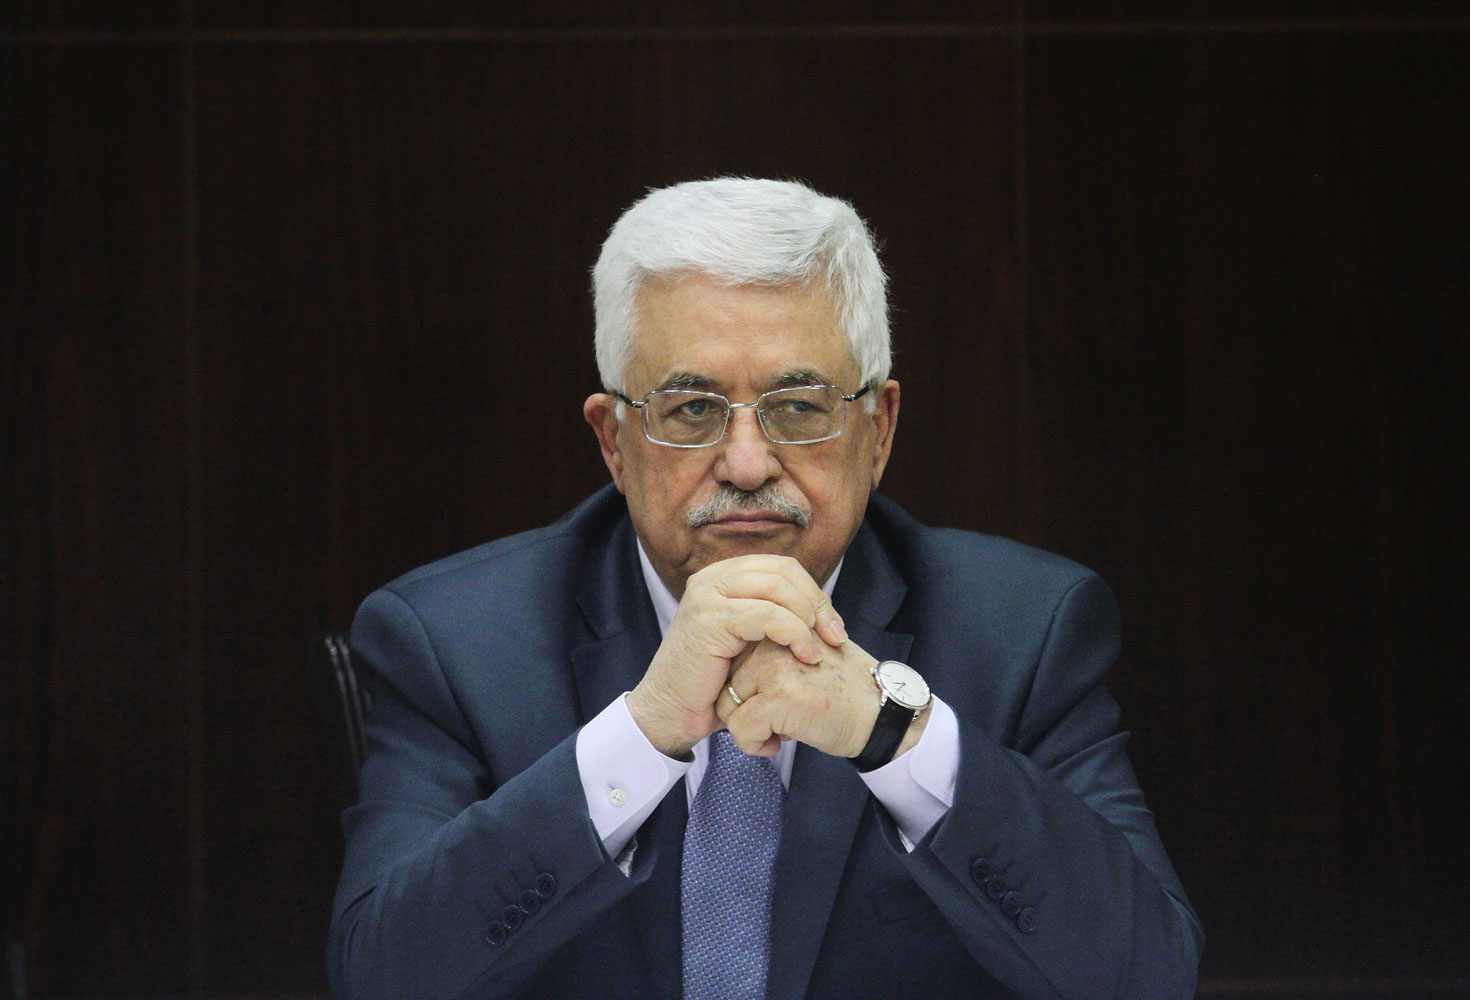 Palestinian National Authority President Mahmoud Abbas chairs a Cabinet session in the West Bank city of Ramallah on July 28, 2013